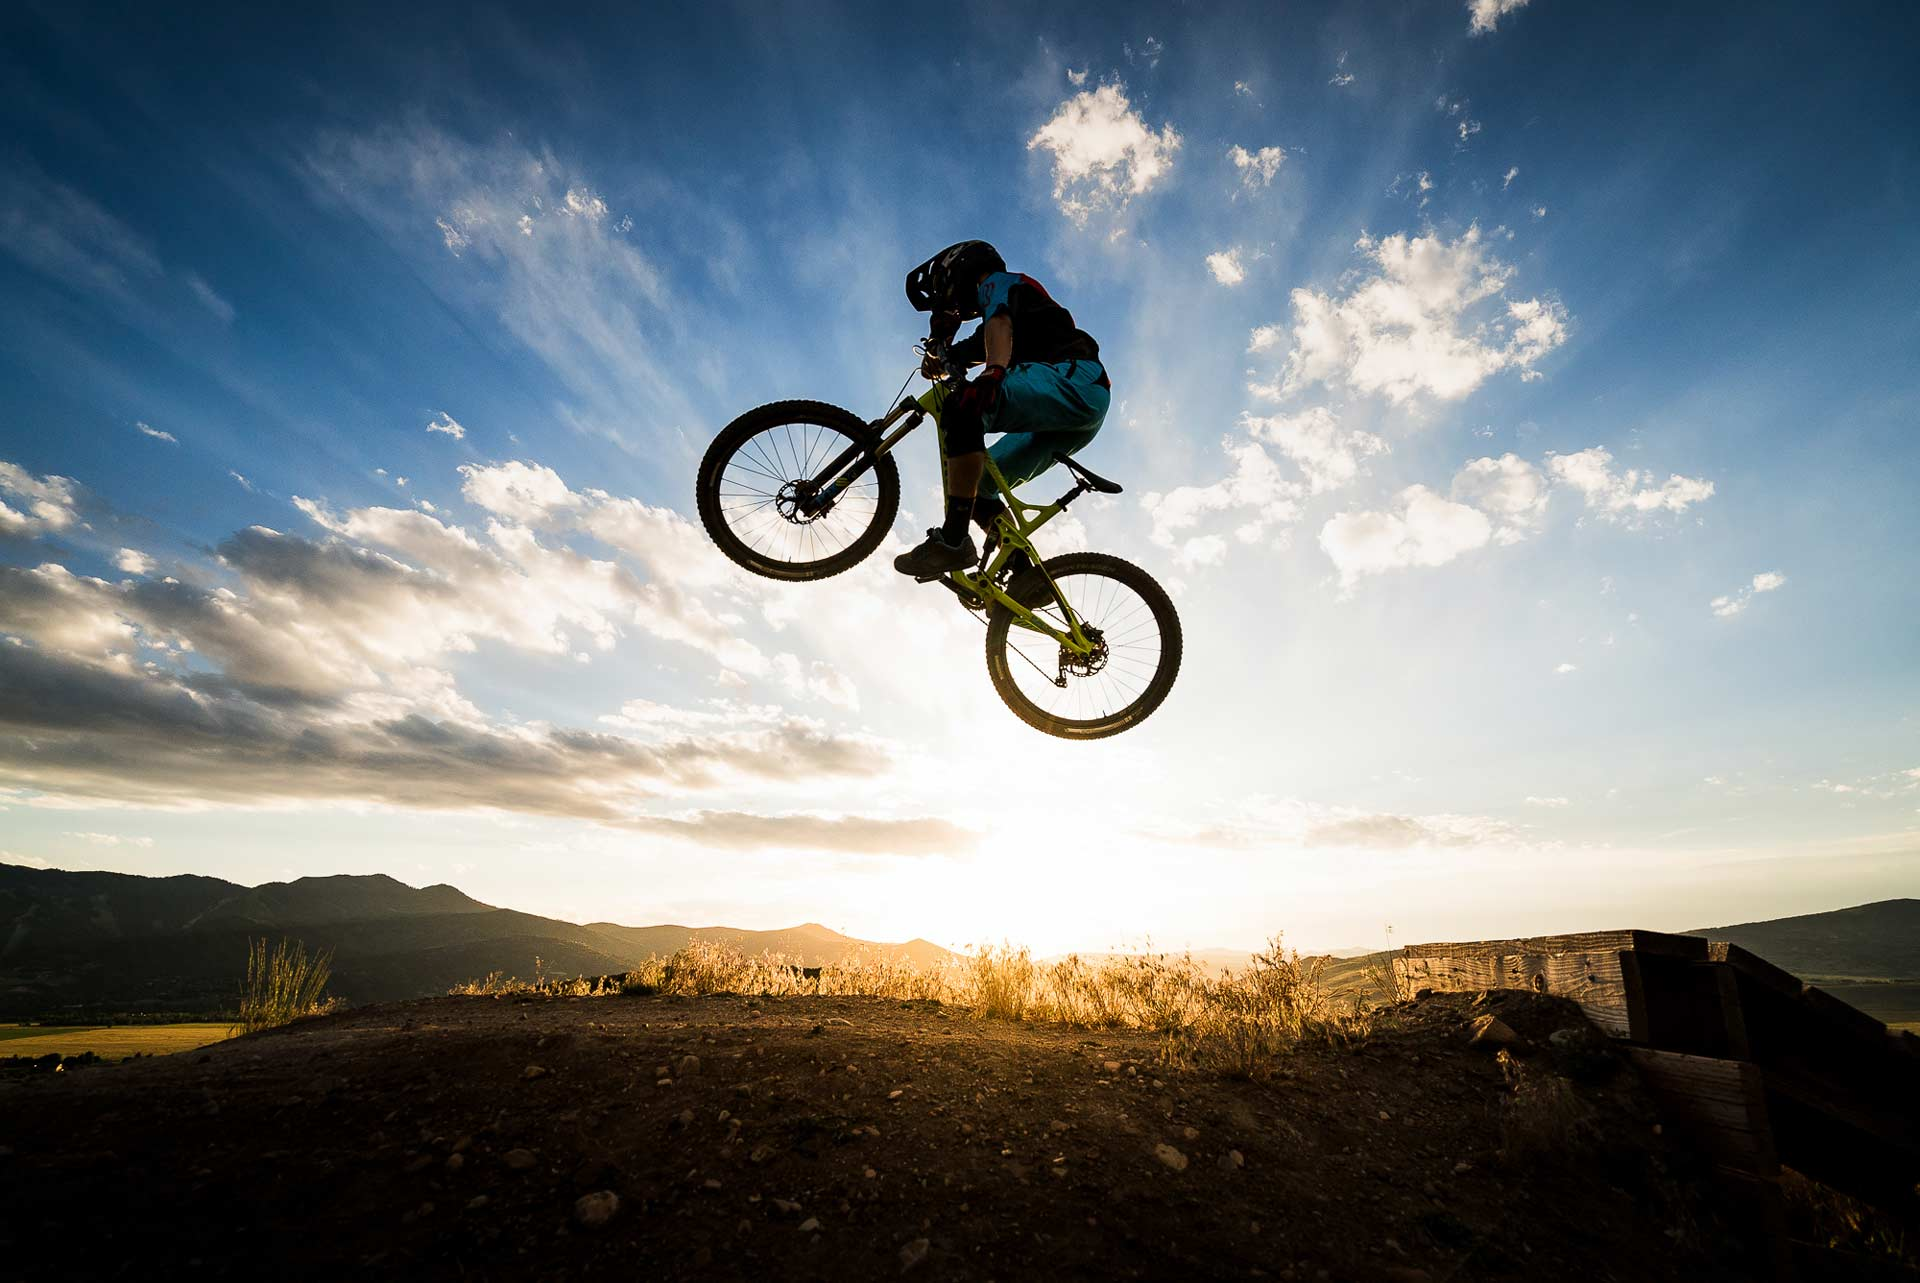 How to take great mountain bike photos - Step two: Shoot in the early mornings and late evenings.